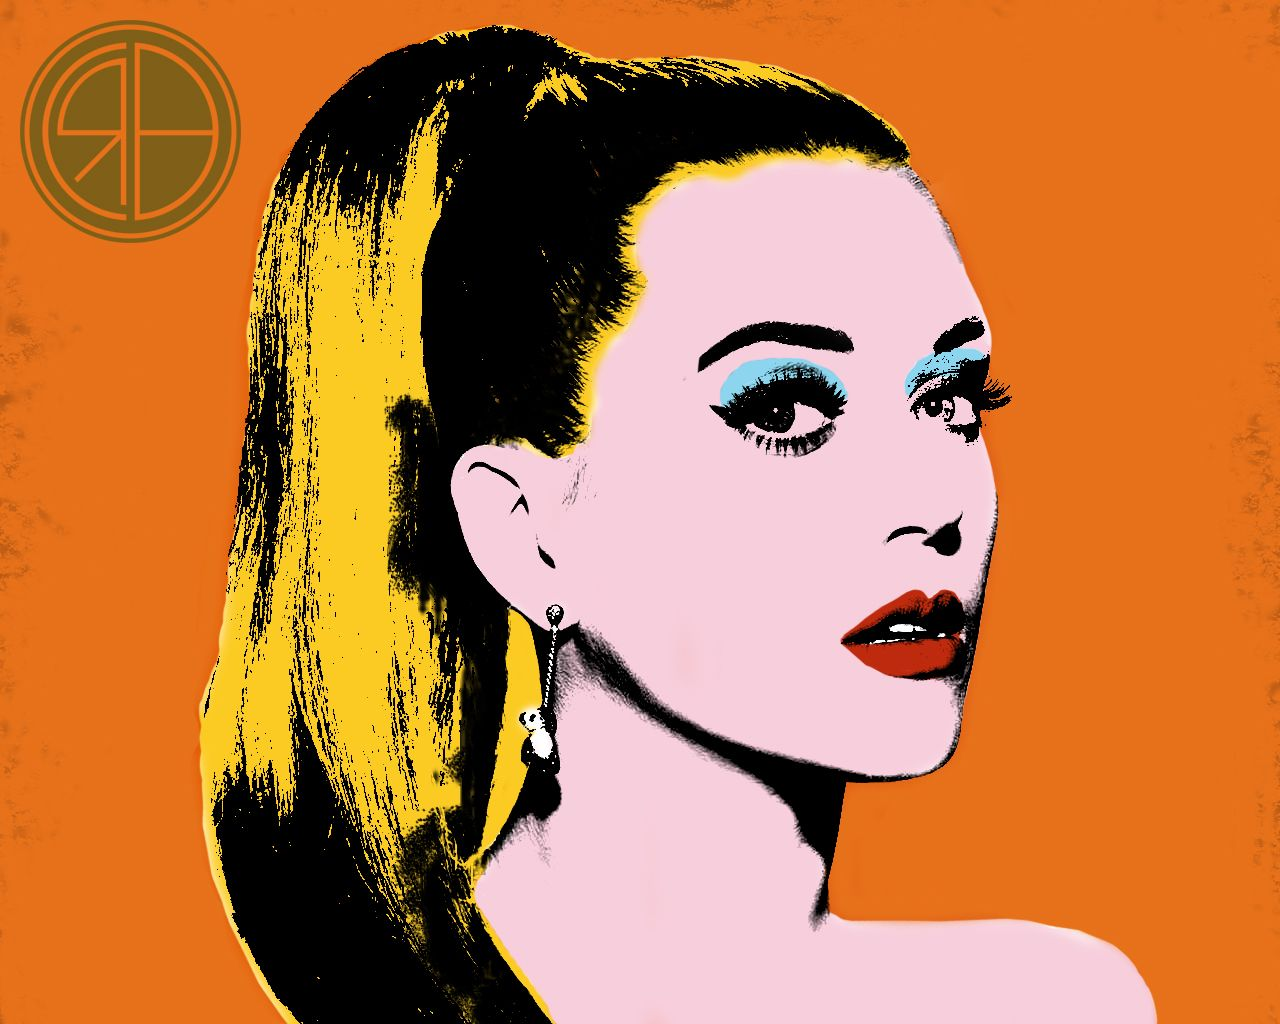 A Warhol Style Design Of Katy Perry Katyperry Art Music Popart Art Andywarhol Pop Art